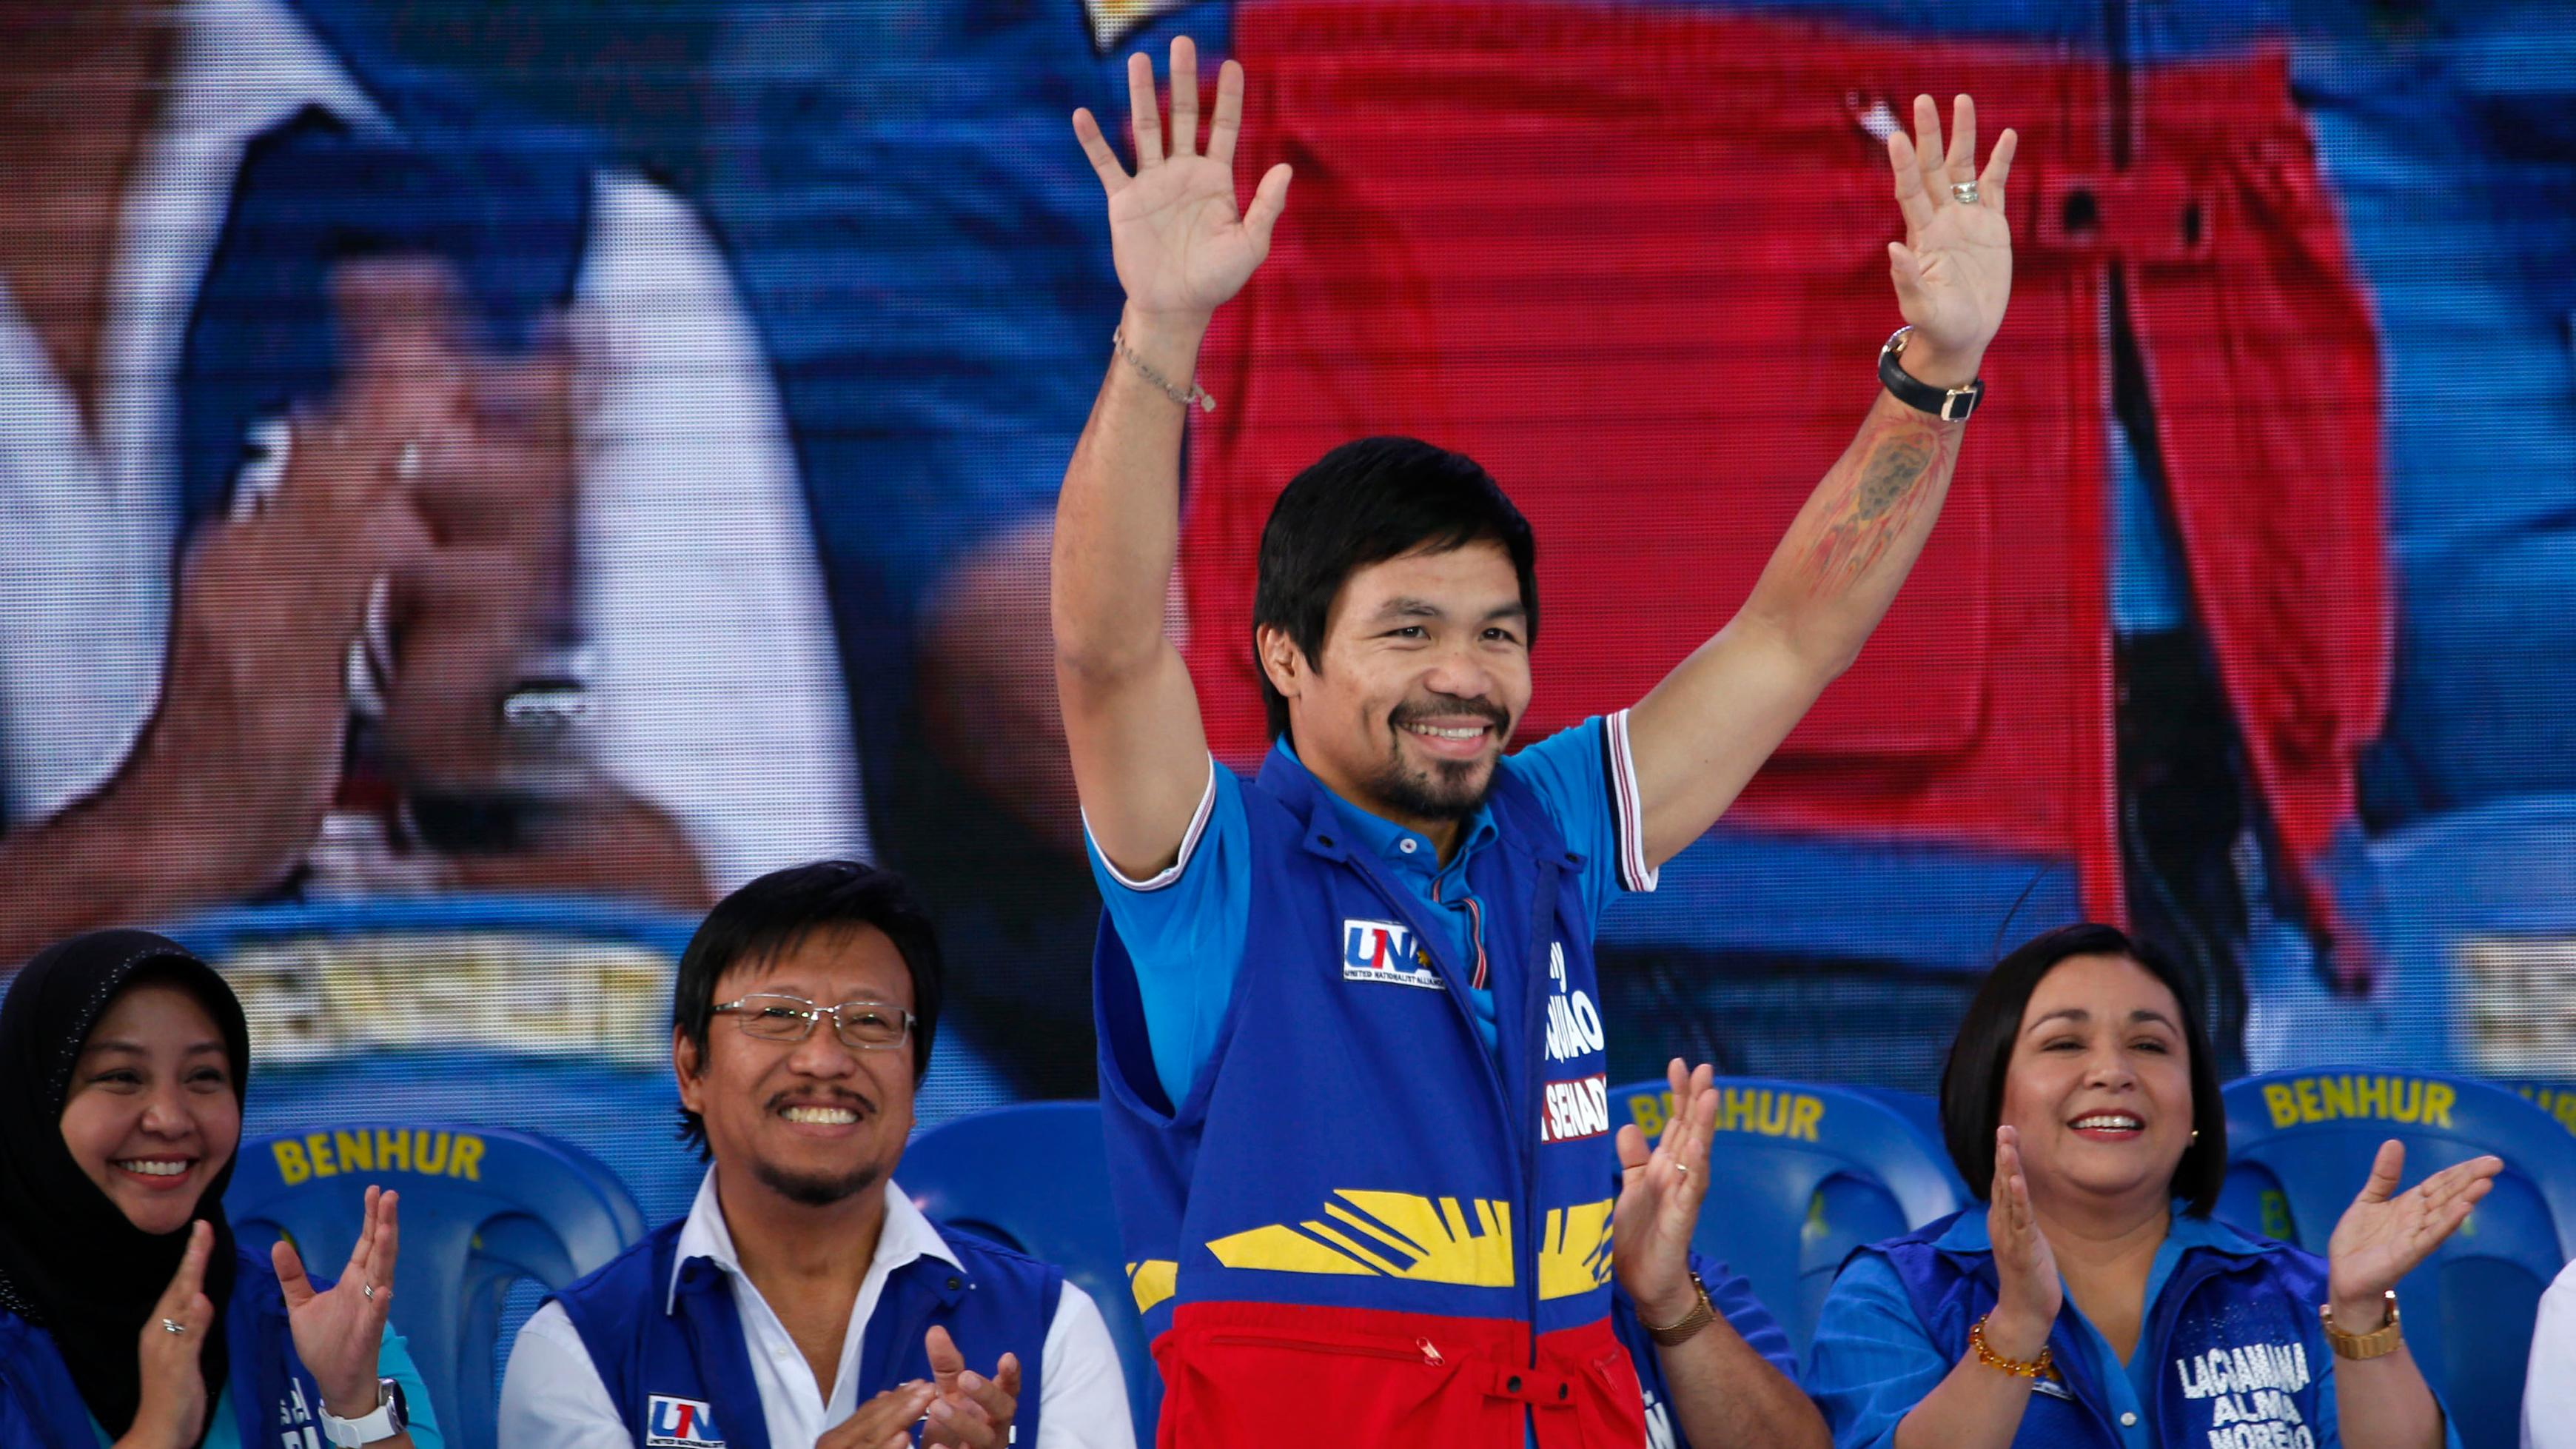 Manny Pacquiao's Nike contract terminated after homophobic slurs